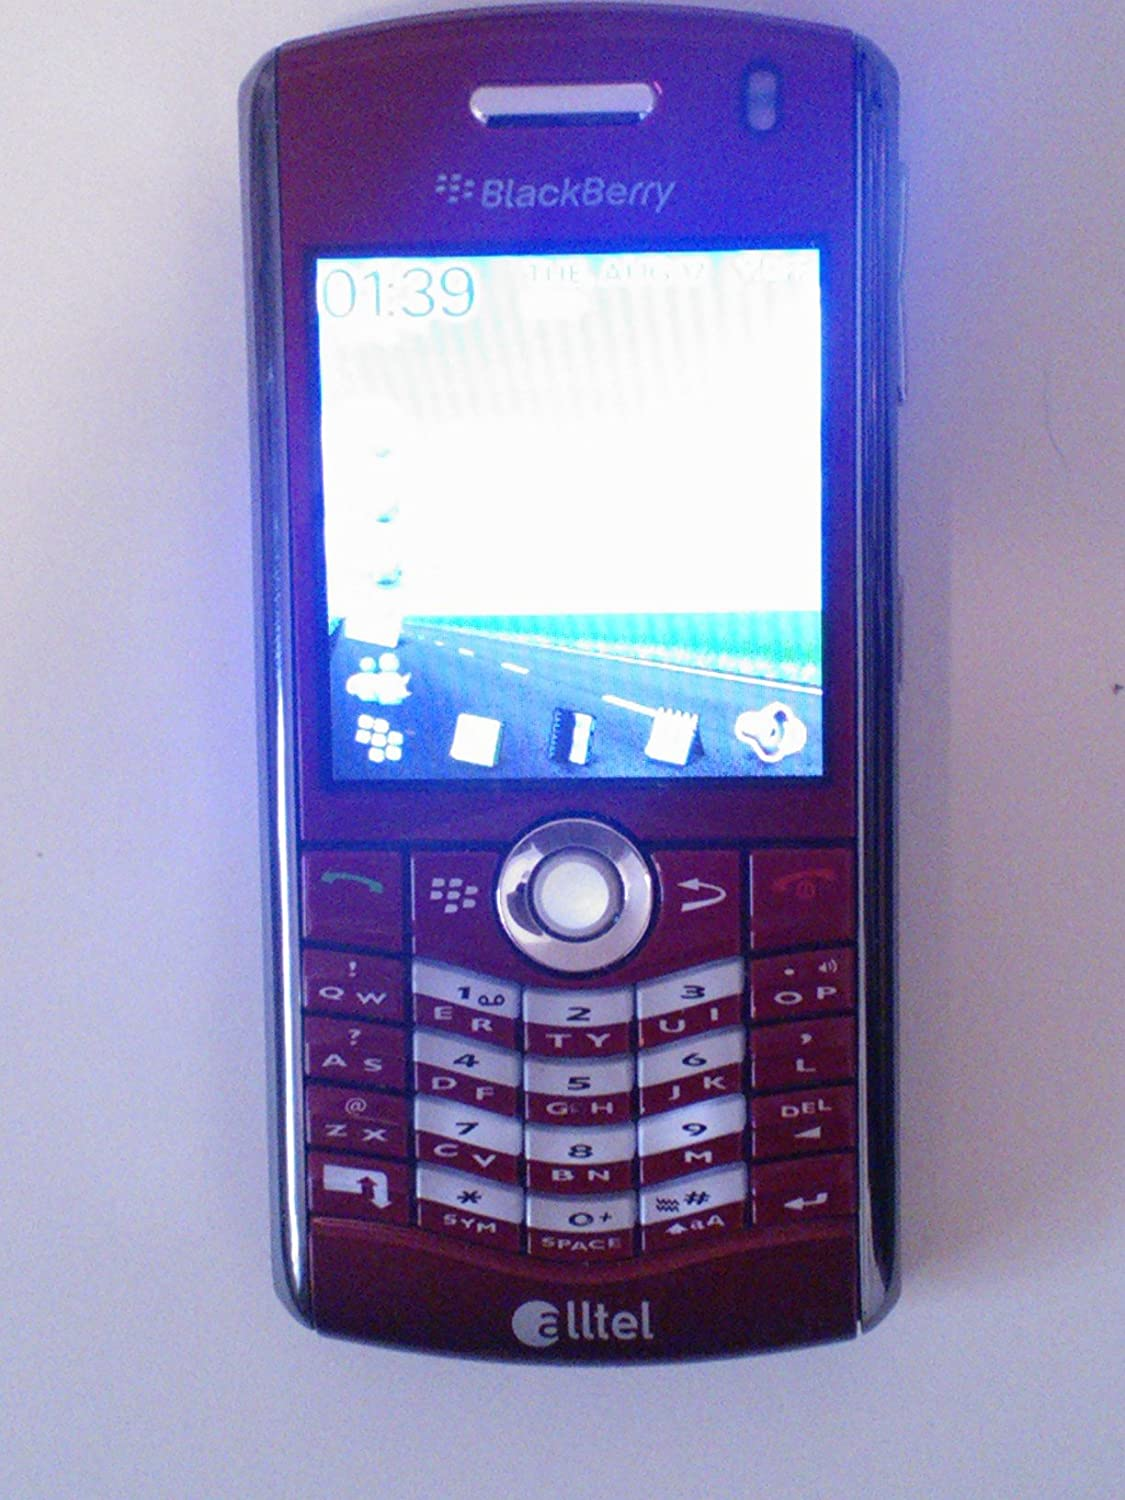 Amazon.com: BlackBerry Pearl 8130 Red - Alltel: Cell Phones & Accessories